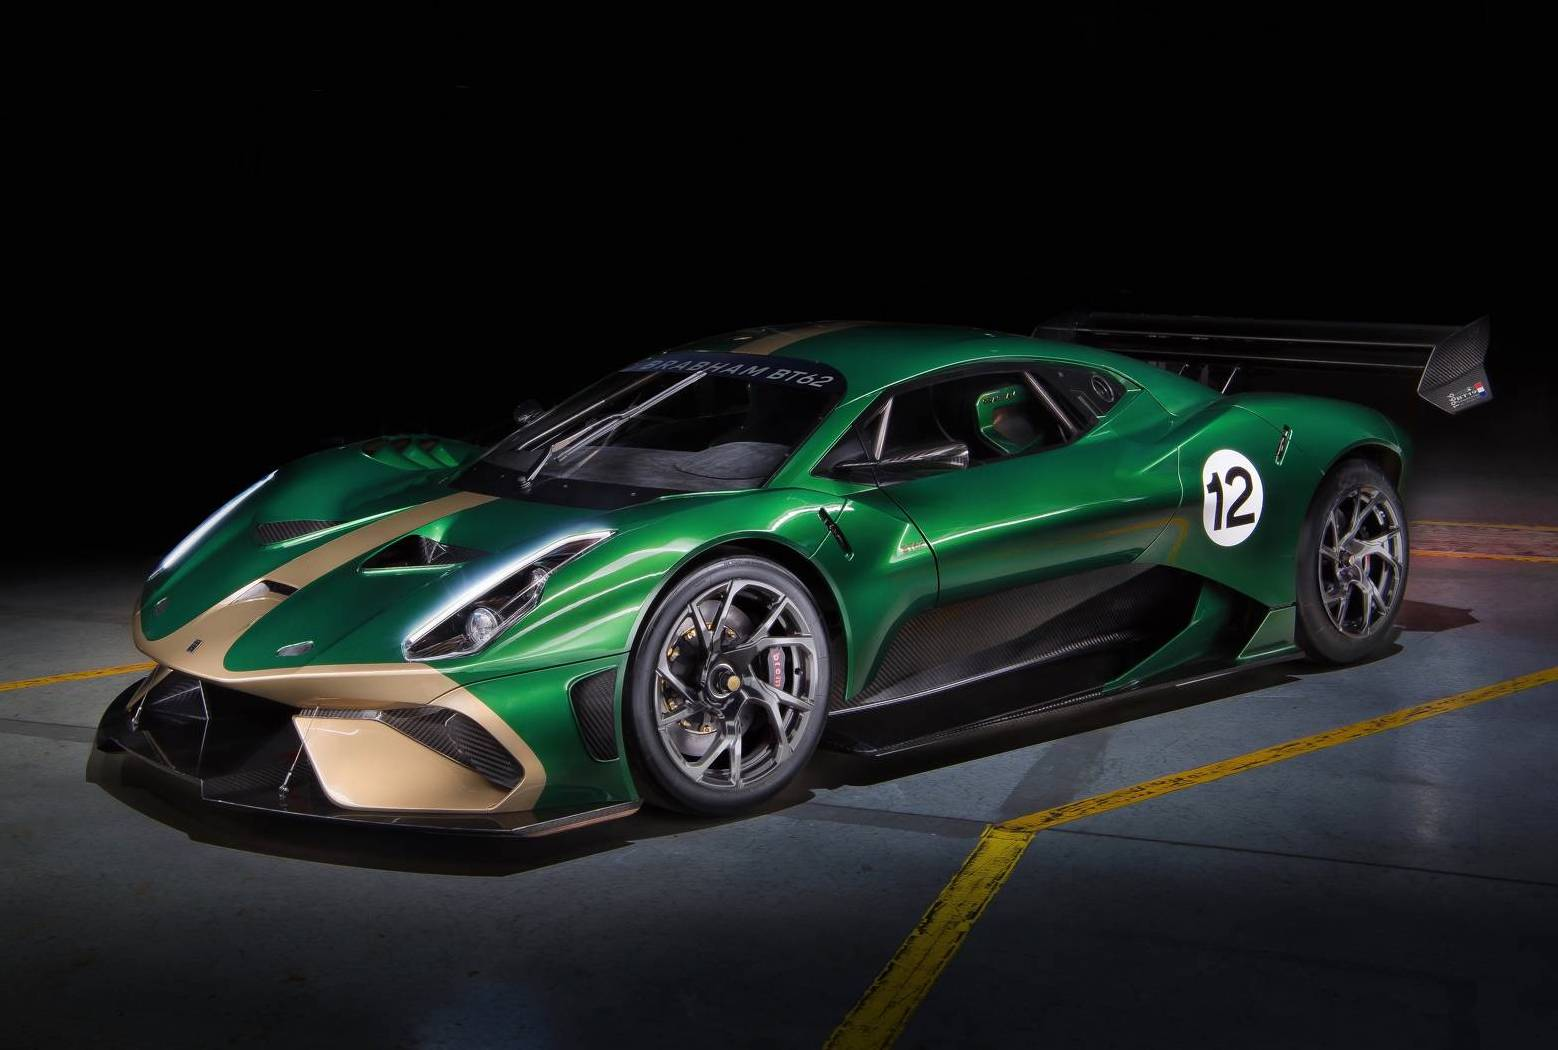 Brabham Bt62 Hypercar Revealed Made In Australia